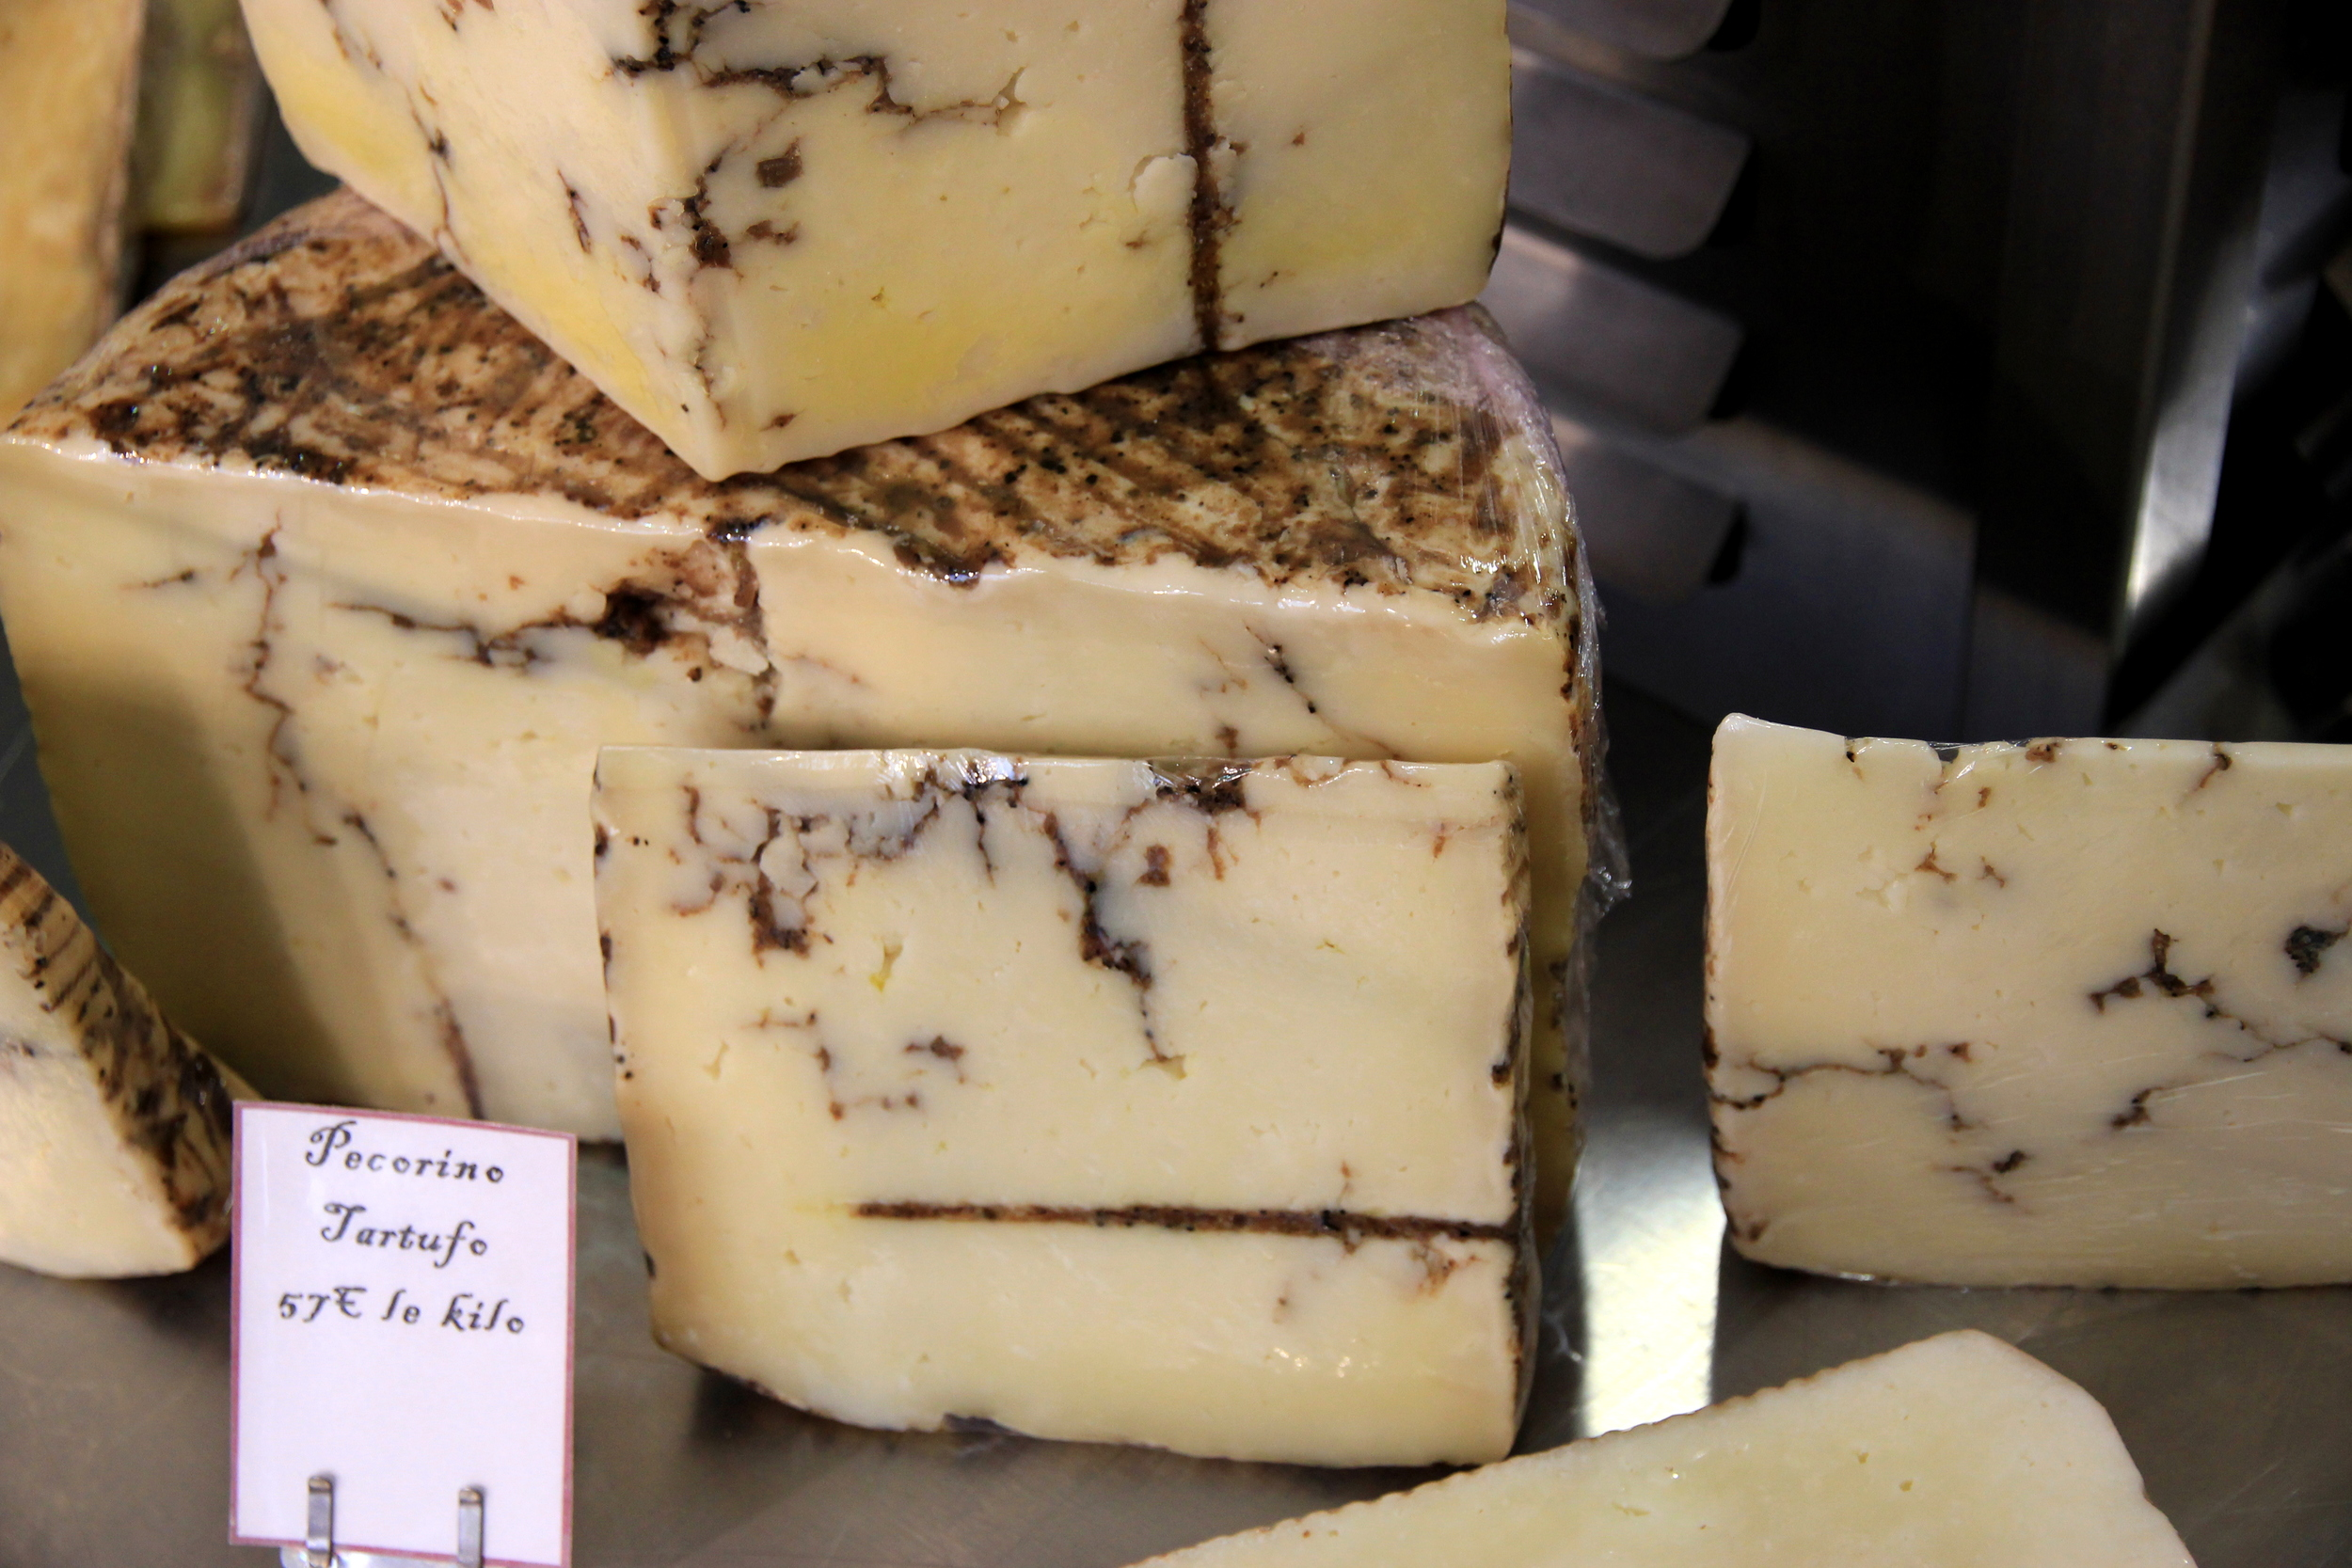 Pecorino cheese with truffles. Completely outrageous. / Fromage italien pecorino avec des truffes. Incroyablement, scandaleusement délicieux.